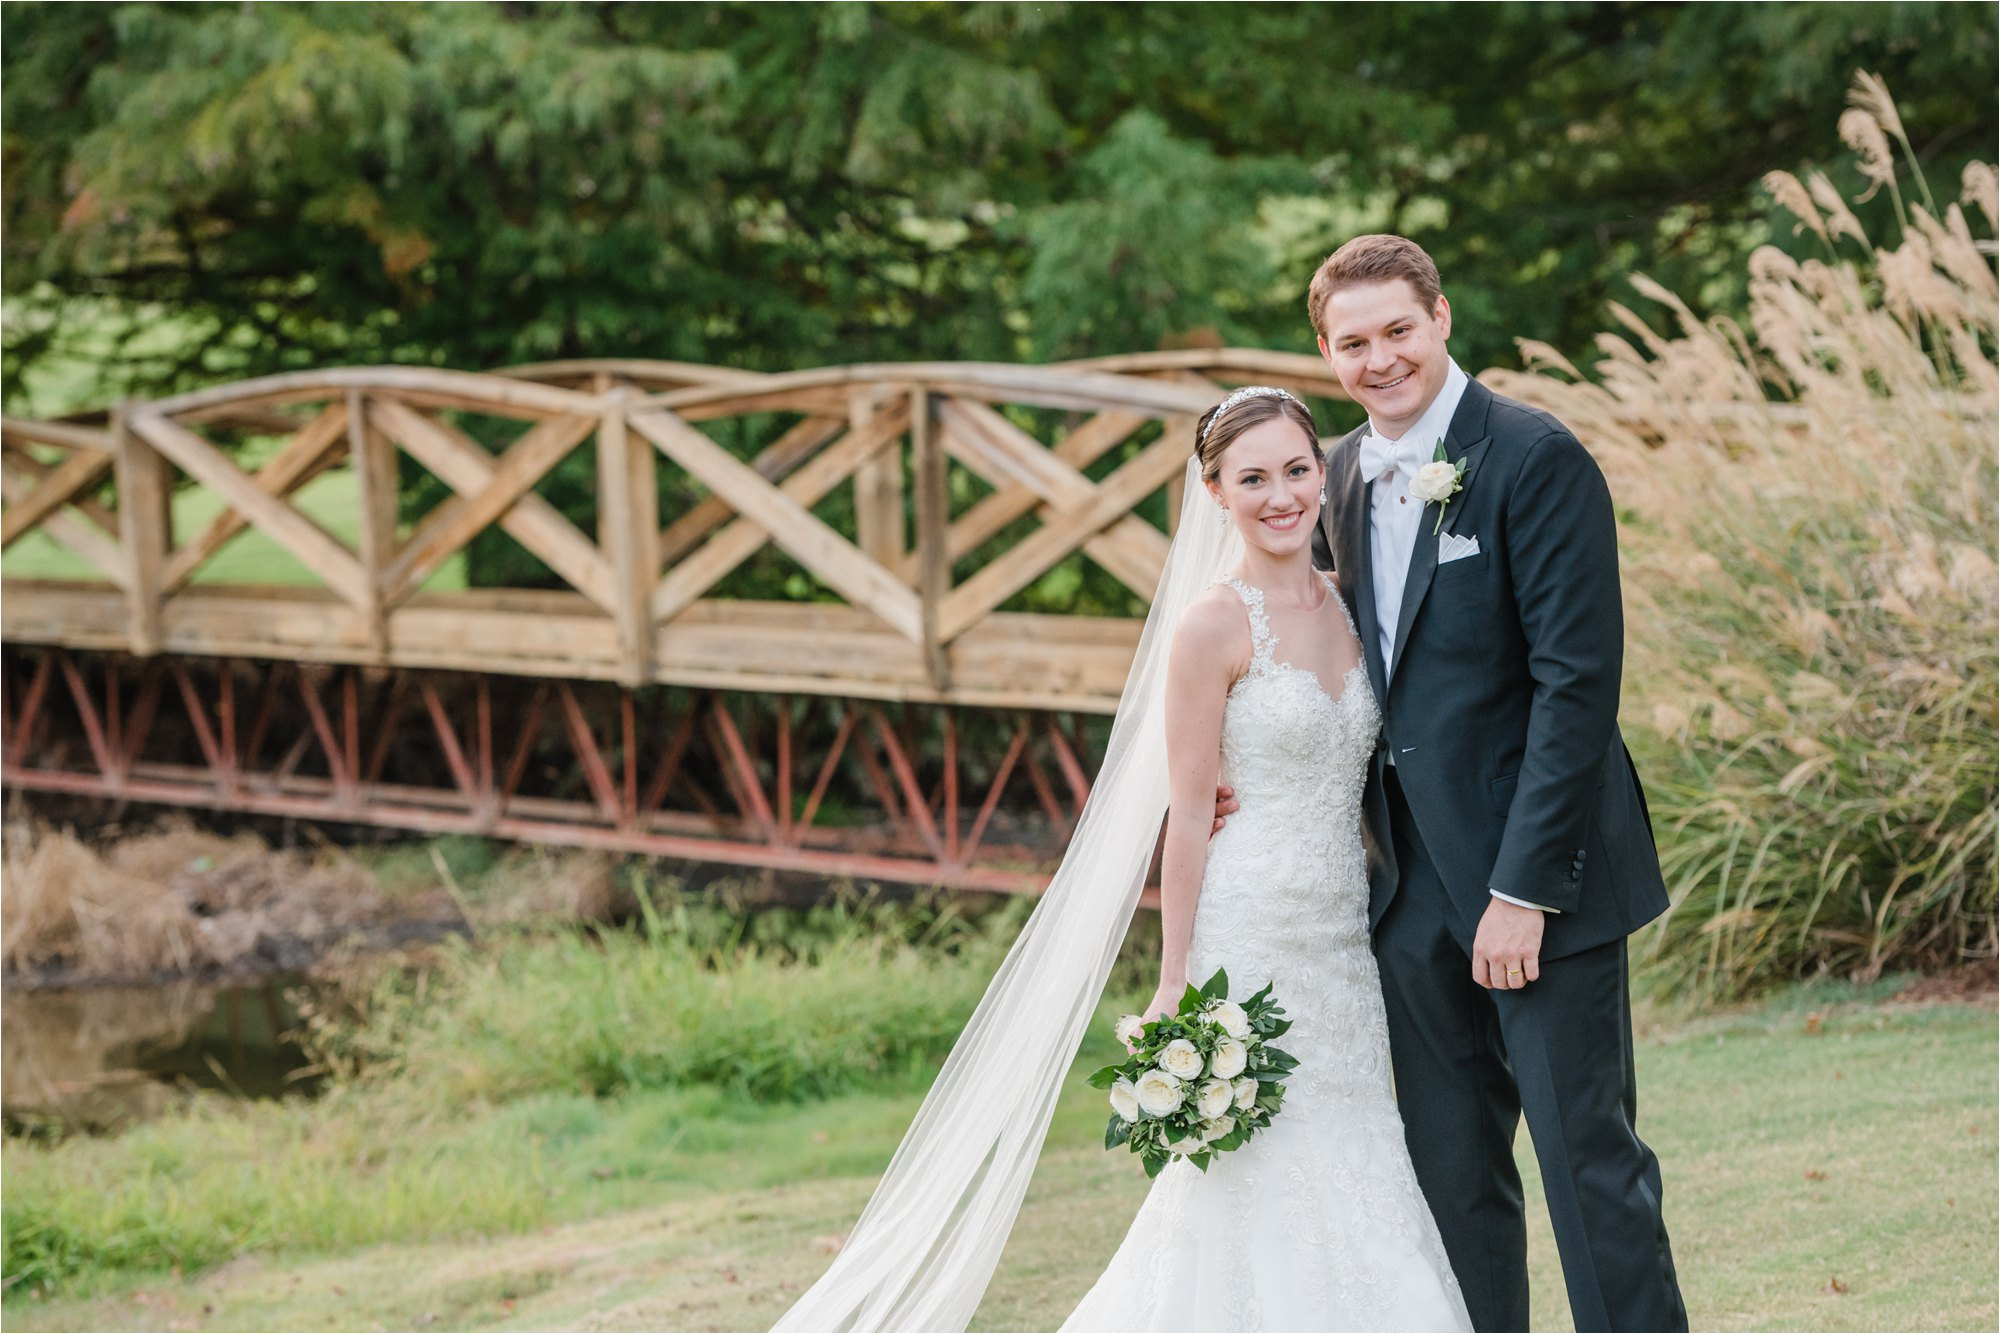 Bride and groom in front of bridge at greensboro country club